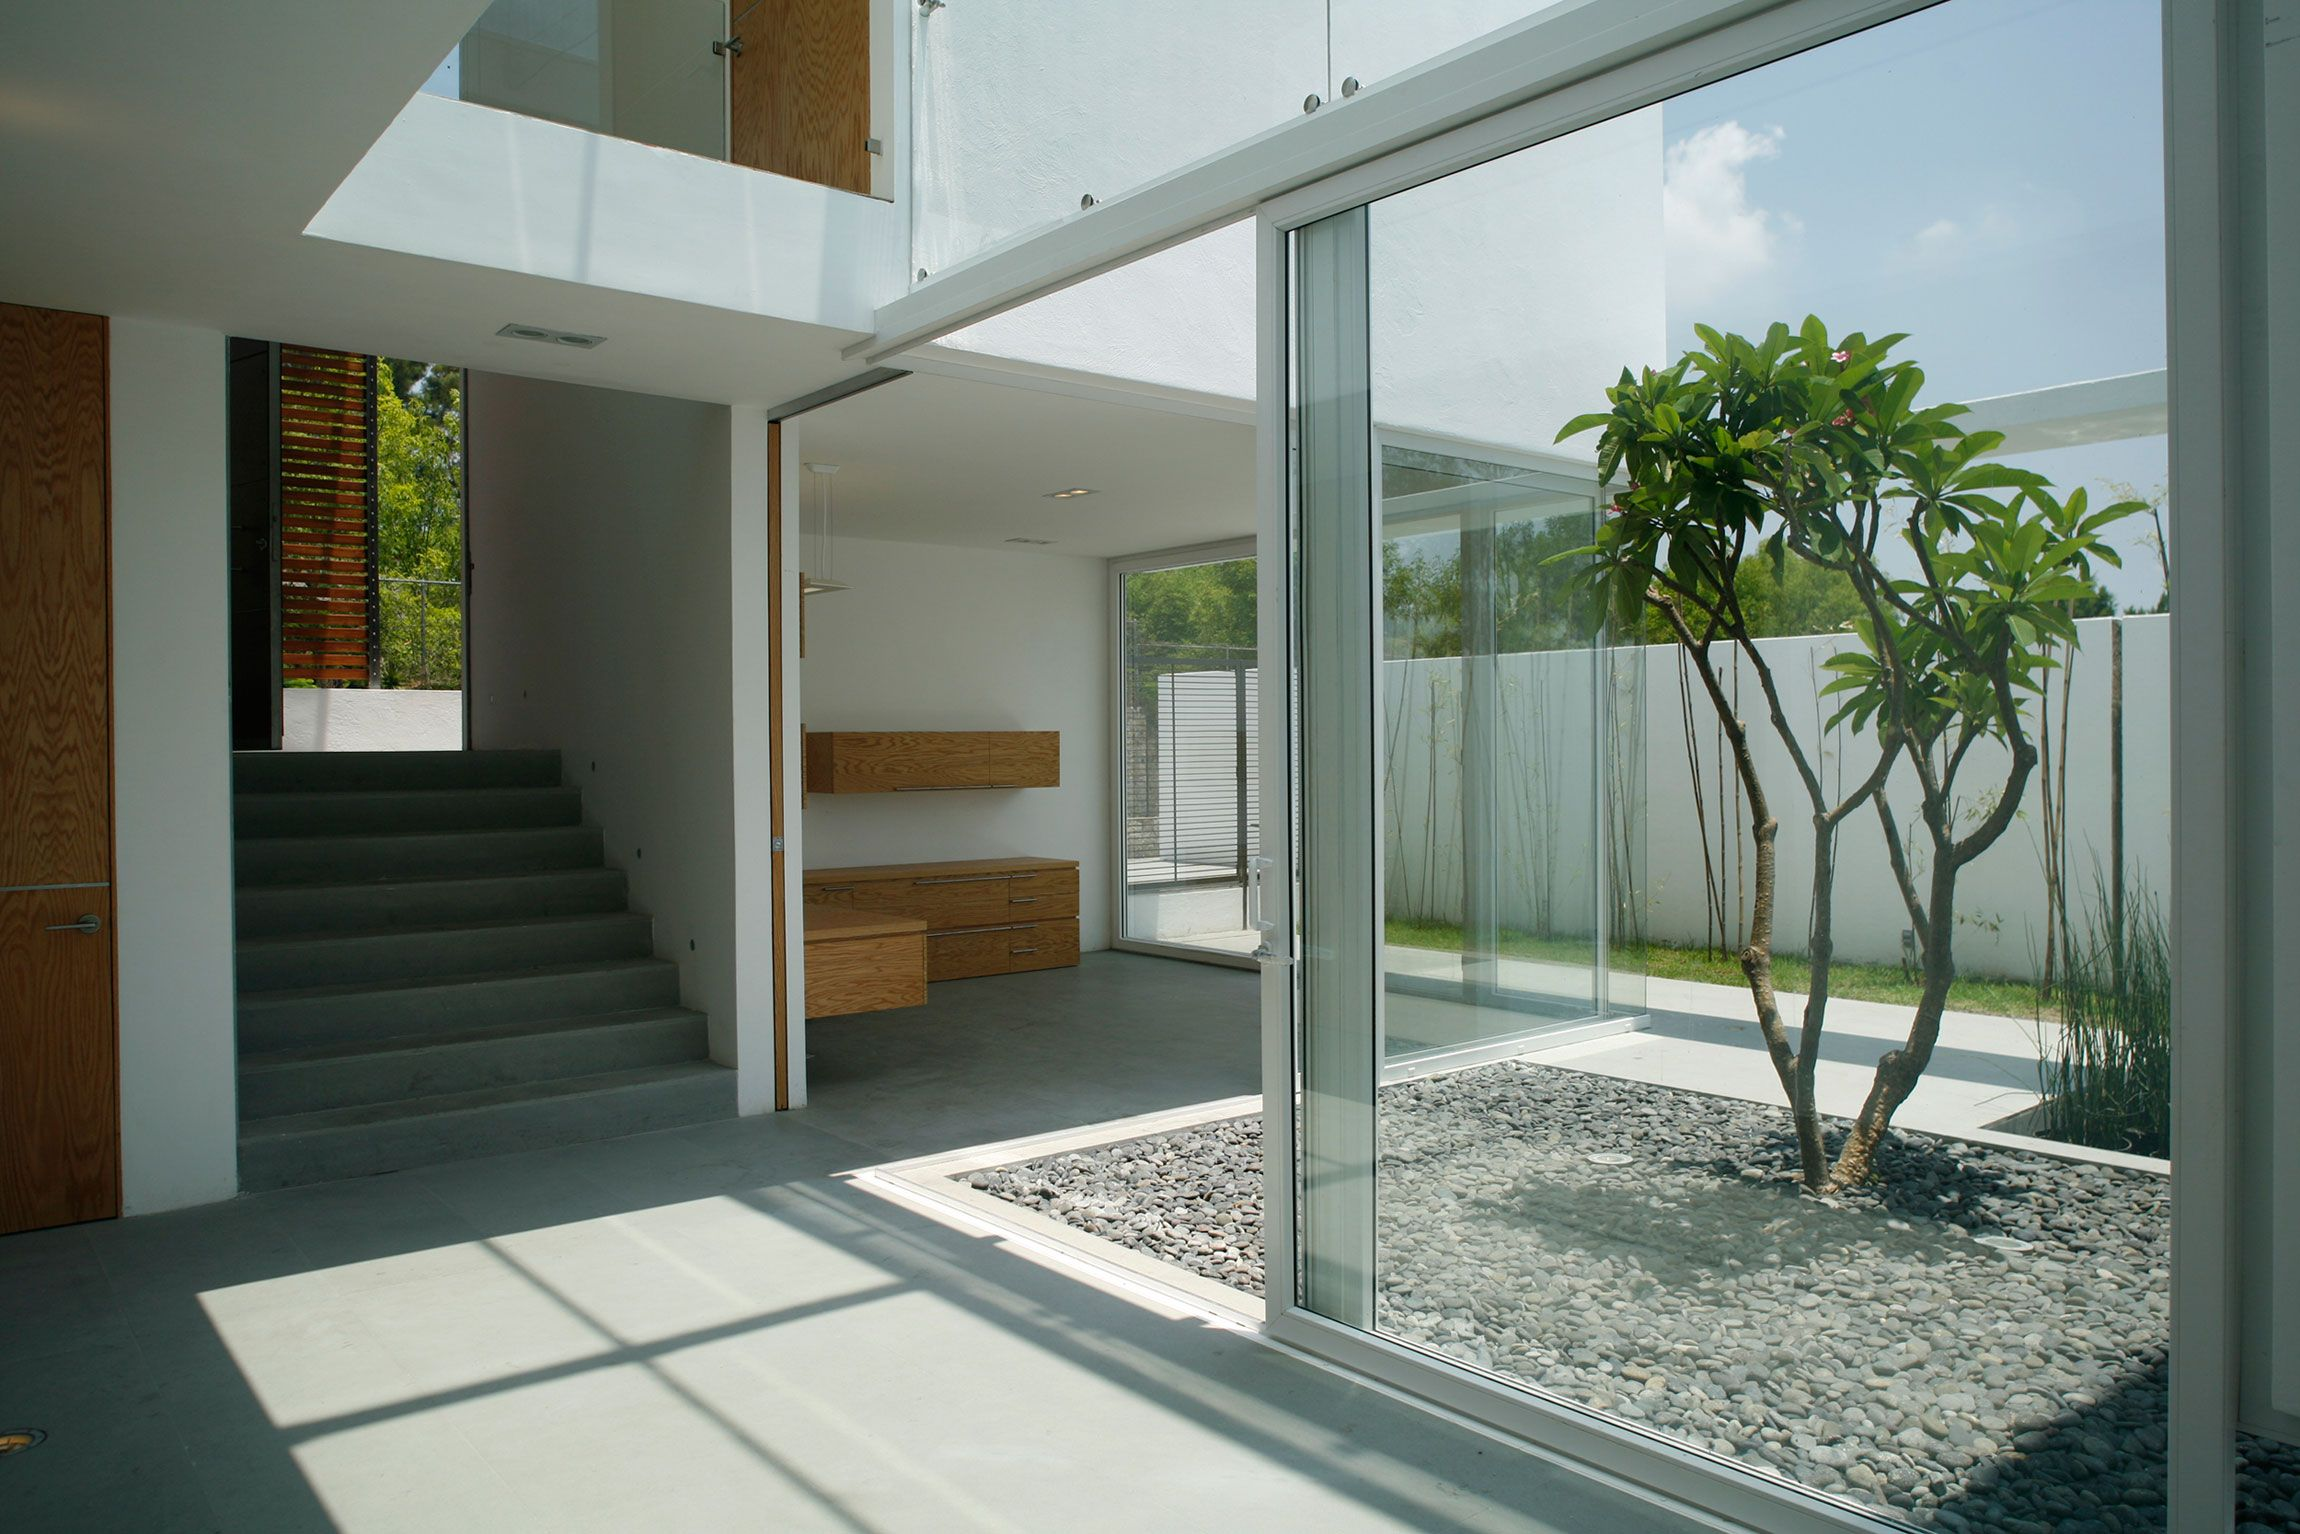 mesmerizing small courtyard modern minimalist block house design